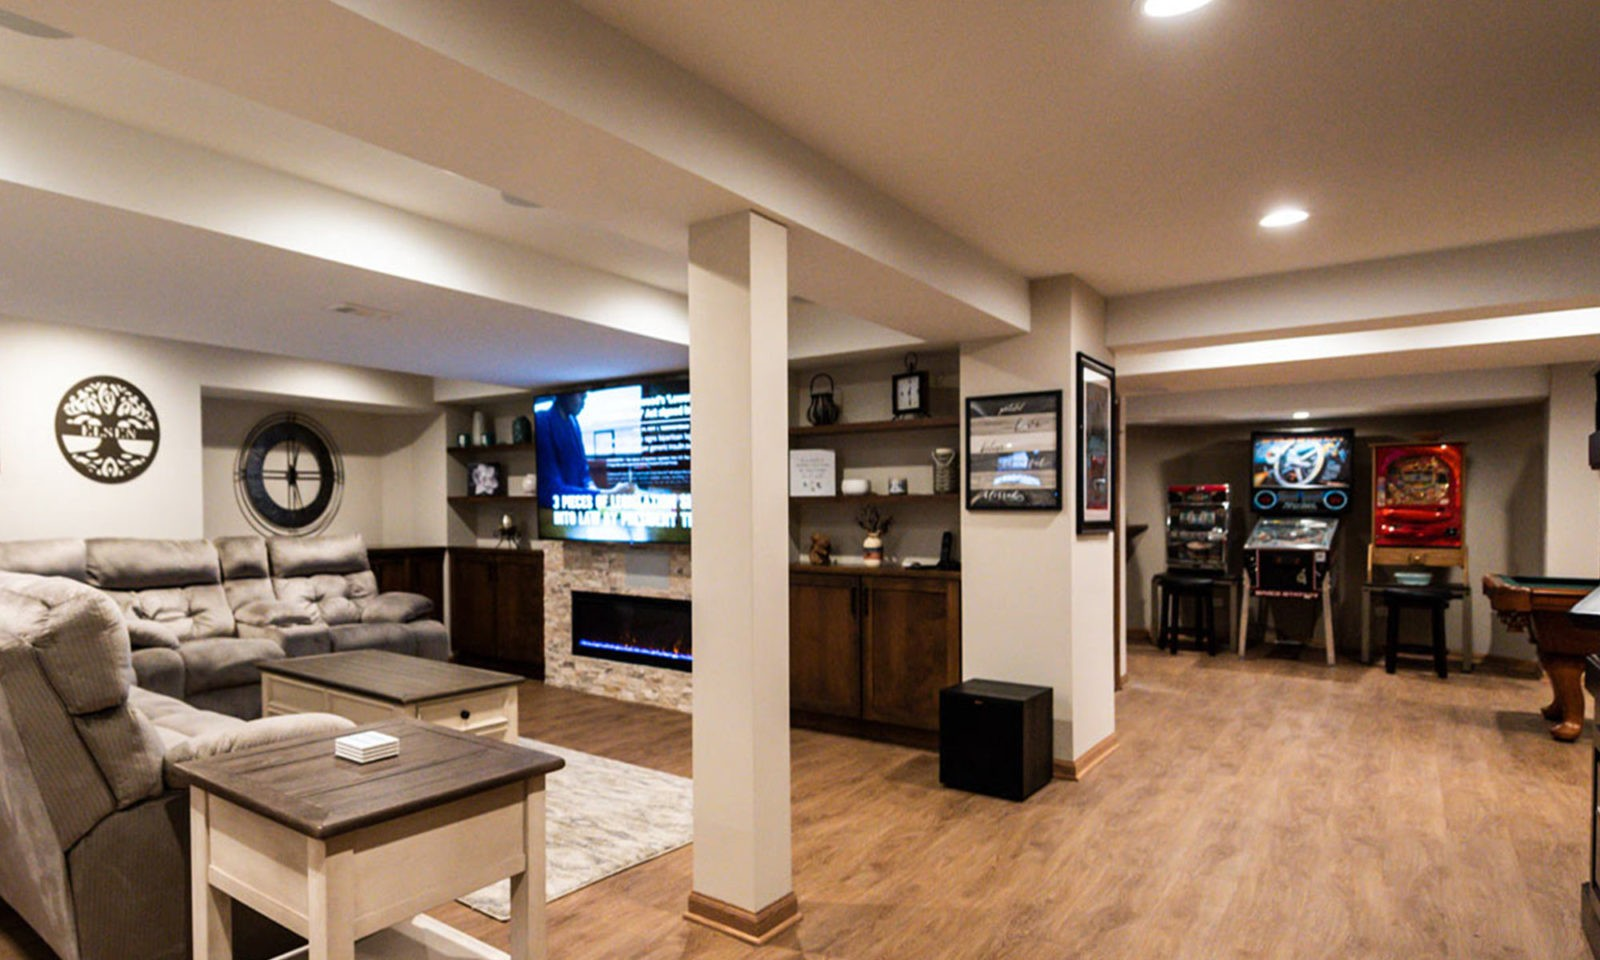 view of TV in basement theatre area